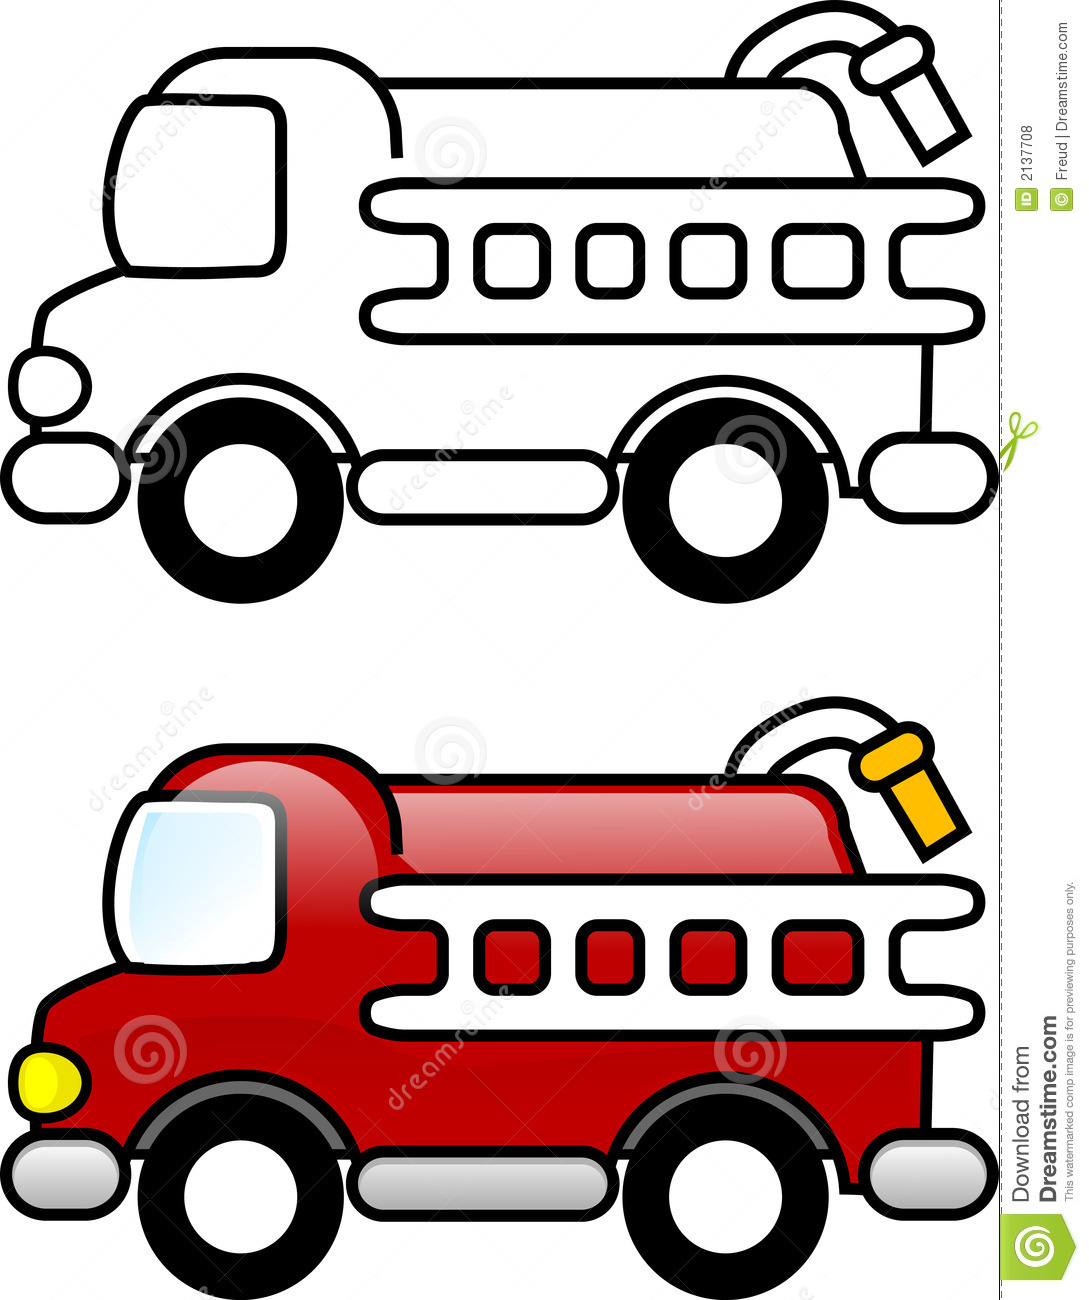 1089x1300 Fire Truck Clipart Simple